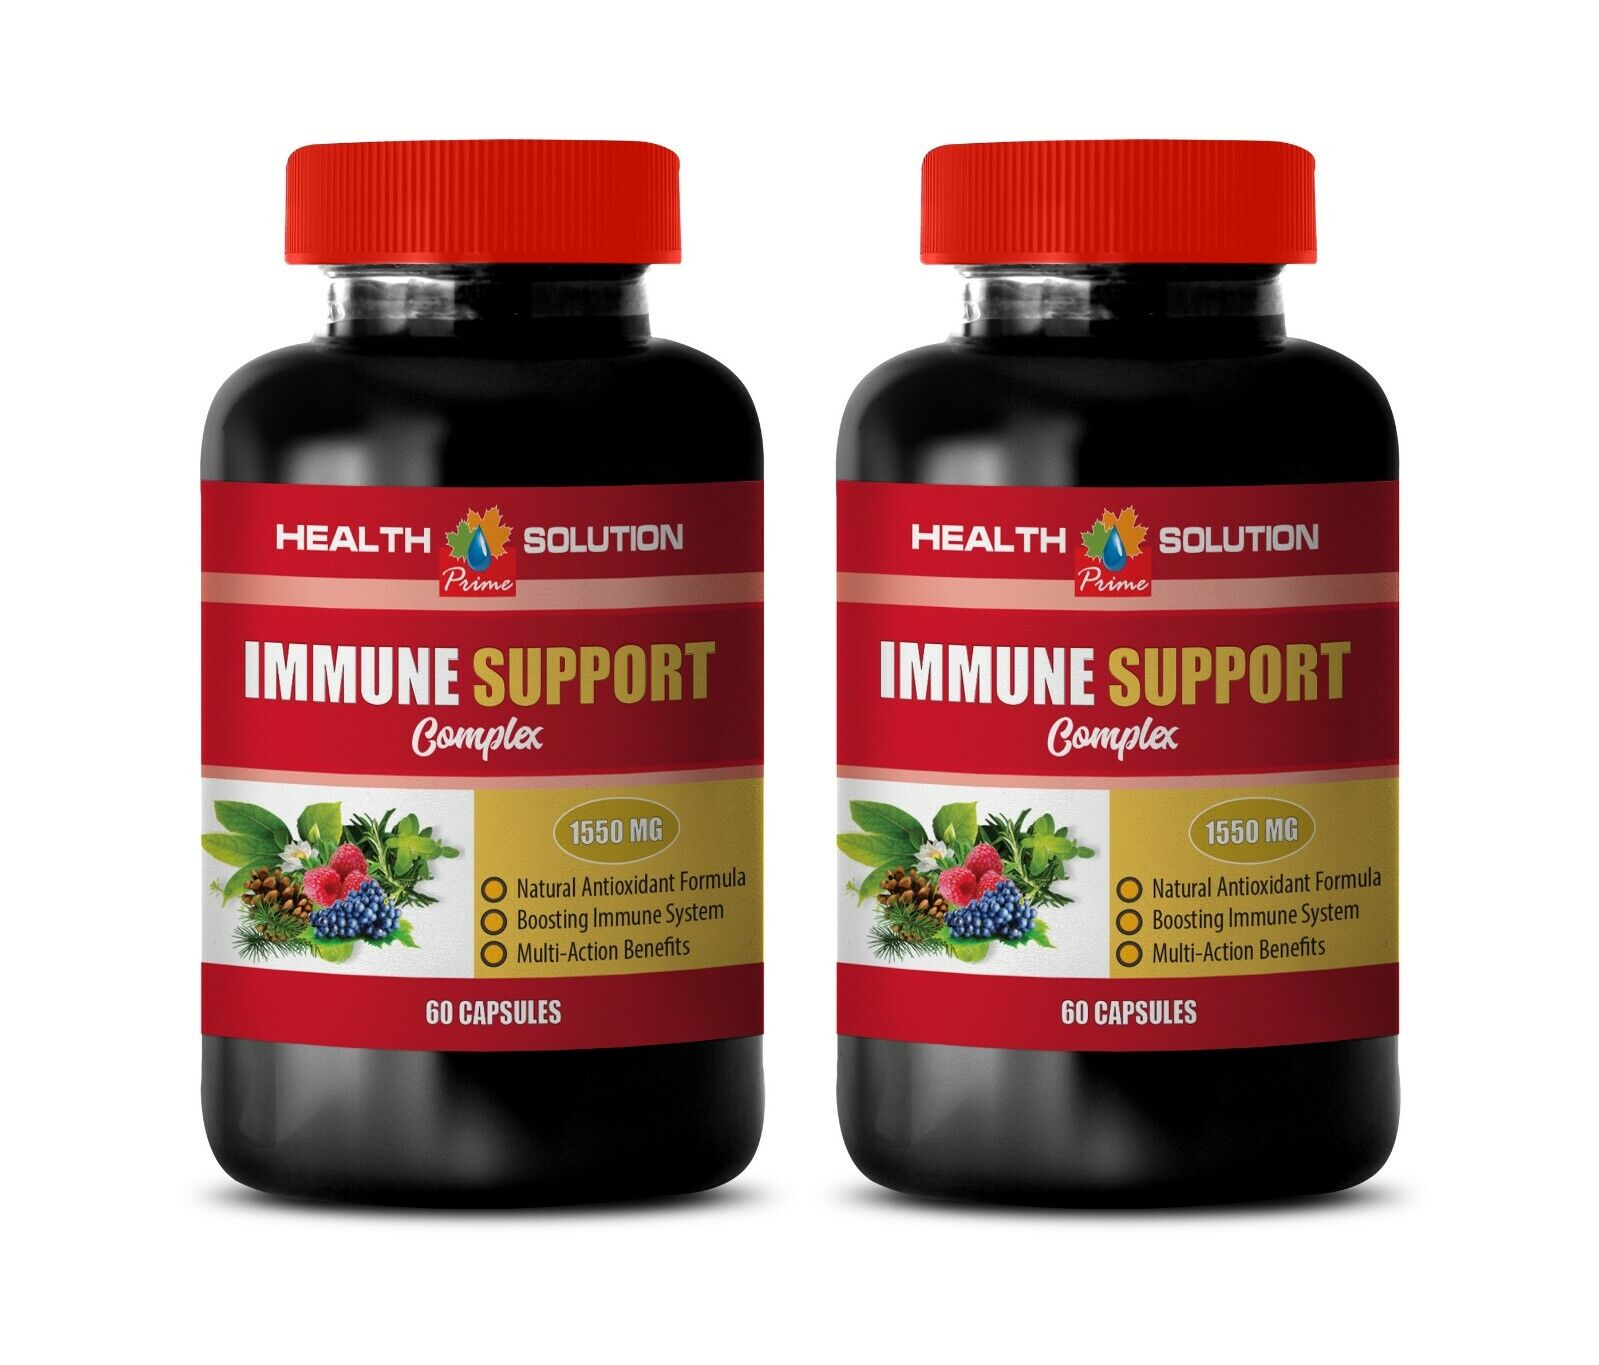 anti inflammatory pill - IMMUNE SUPPORT - anti inflammation skin care 2BOTTLE